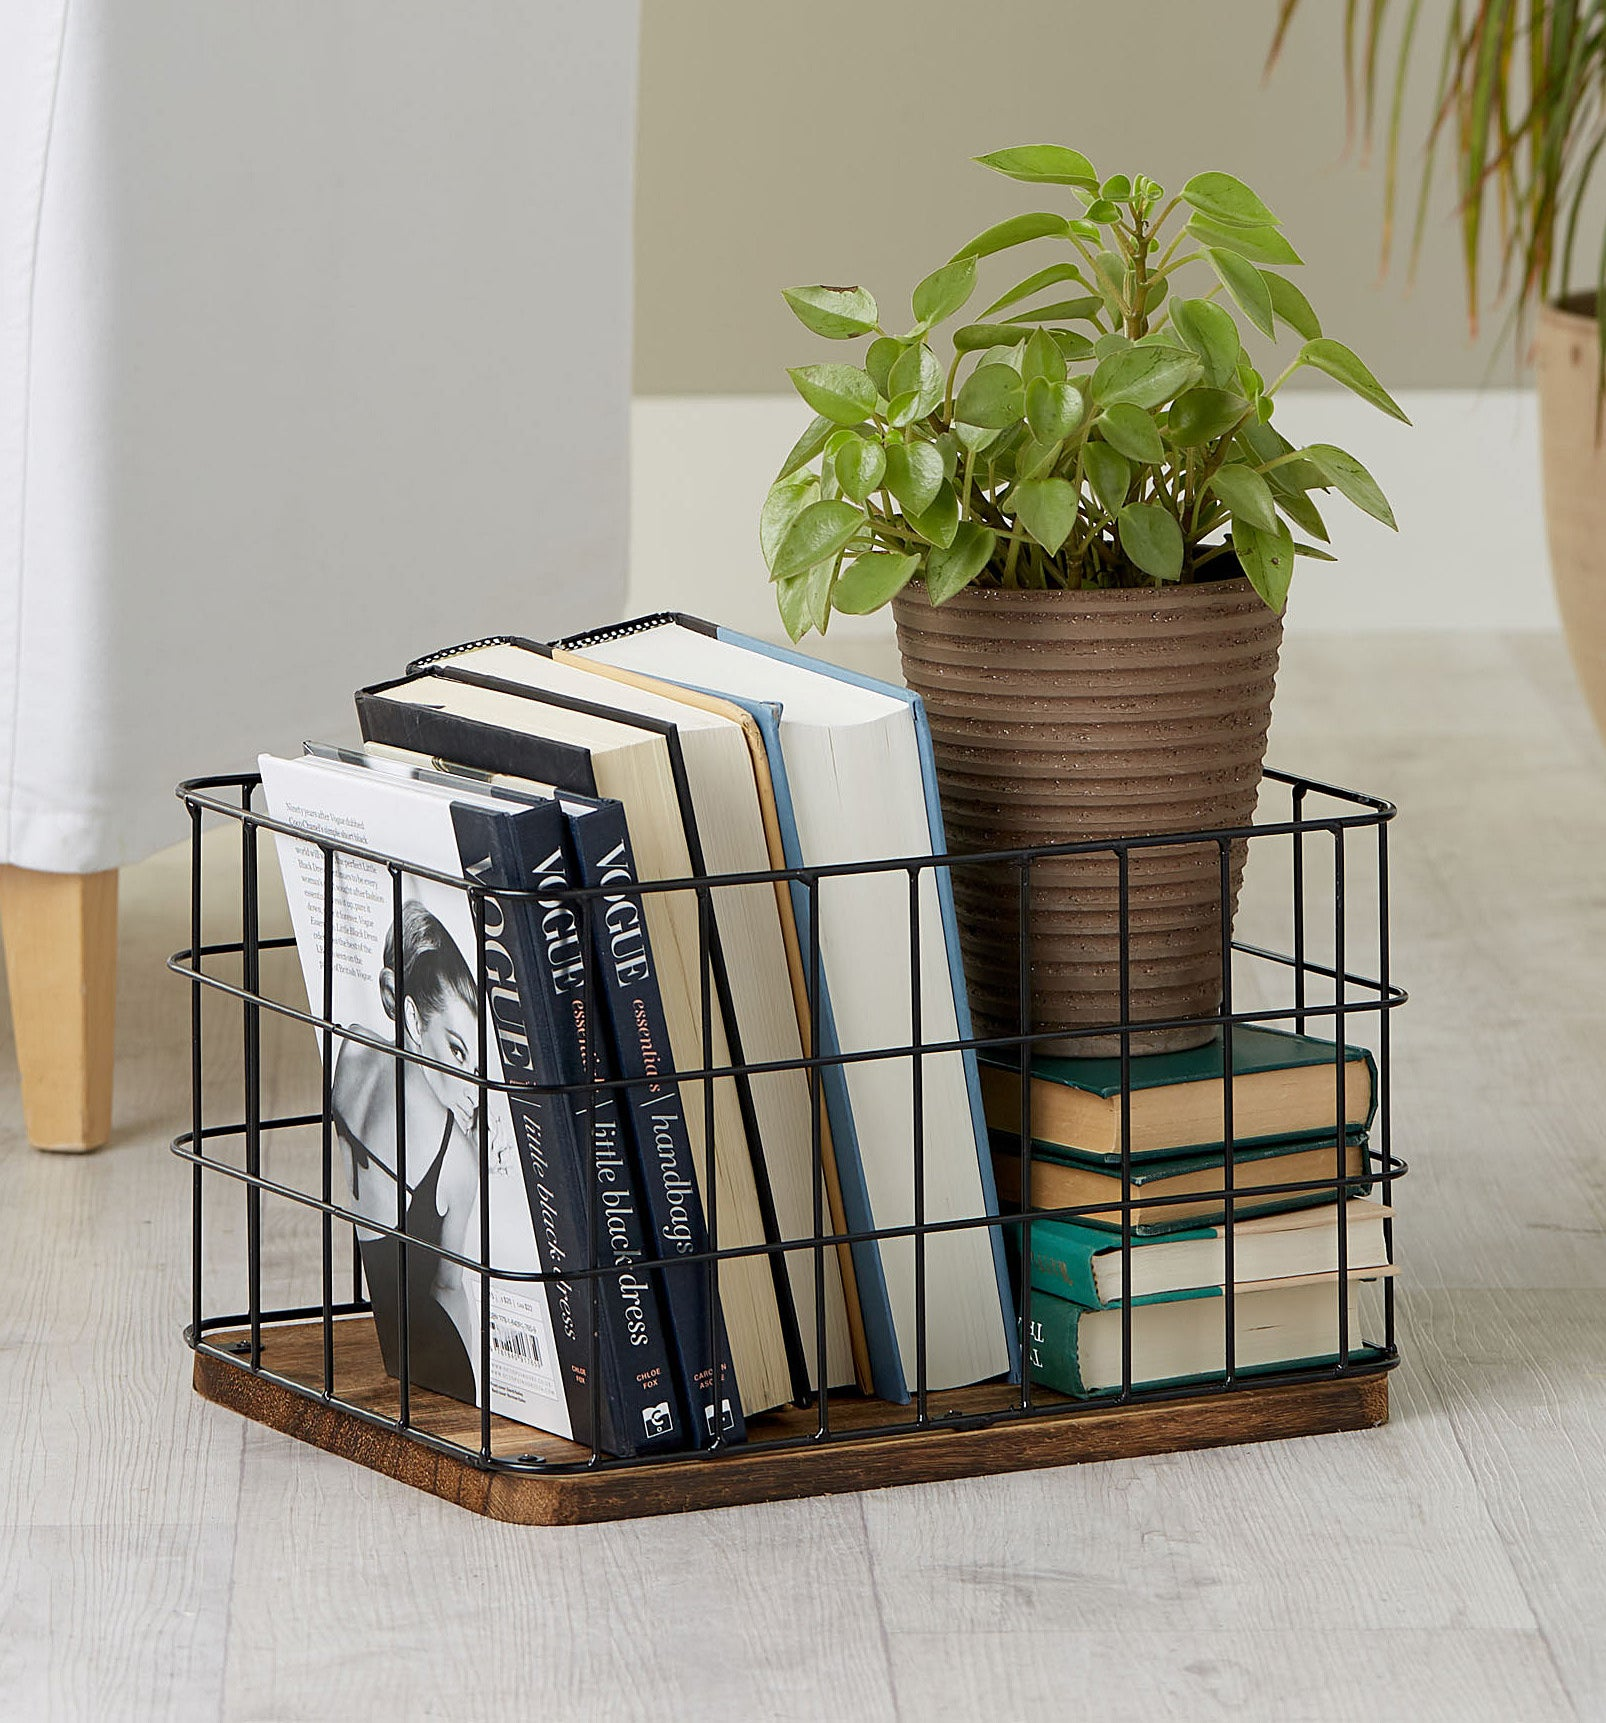 A metal basket with books inside